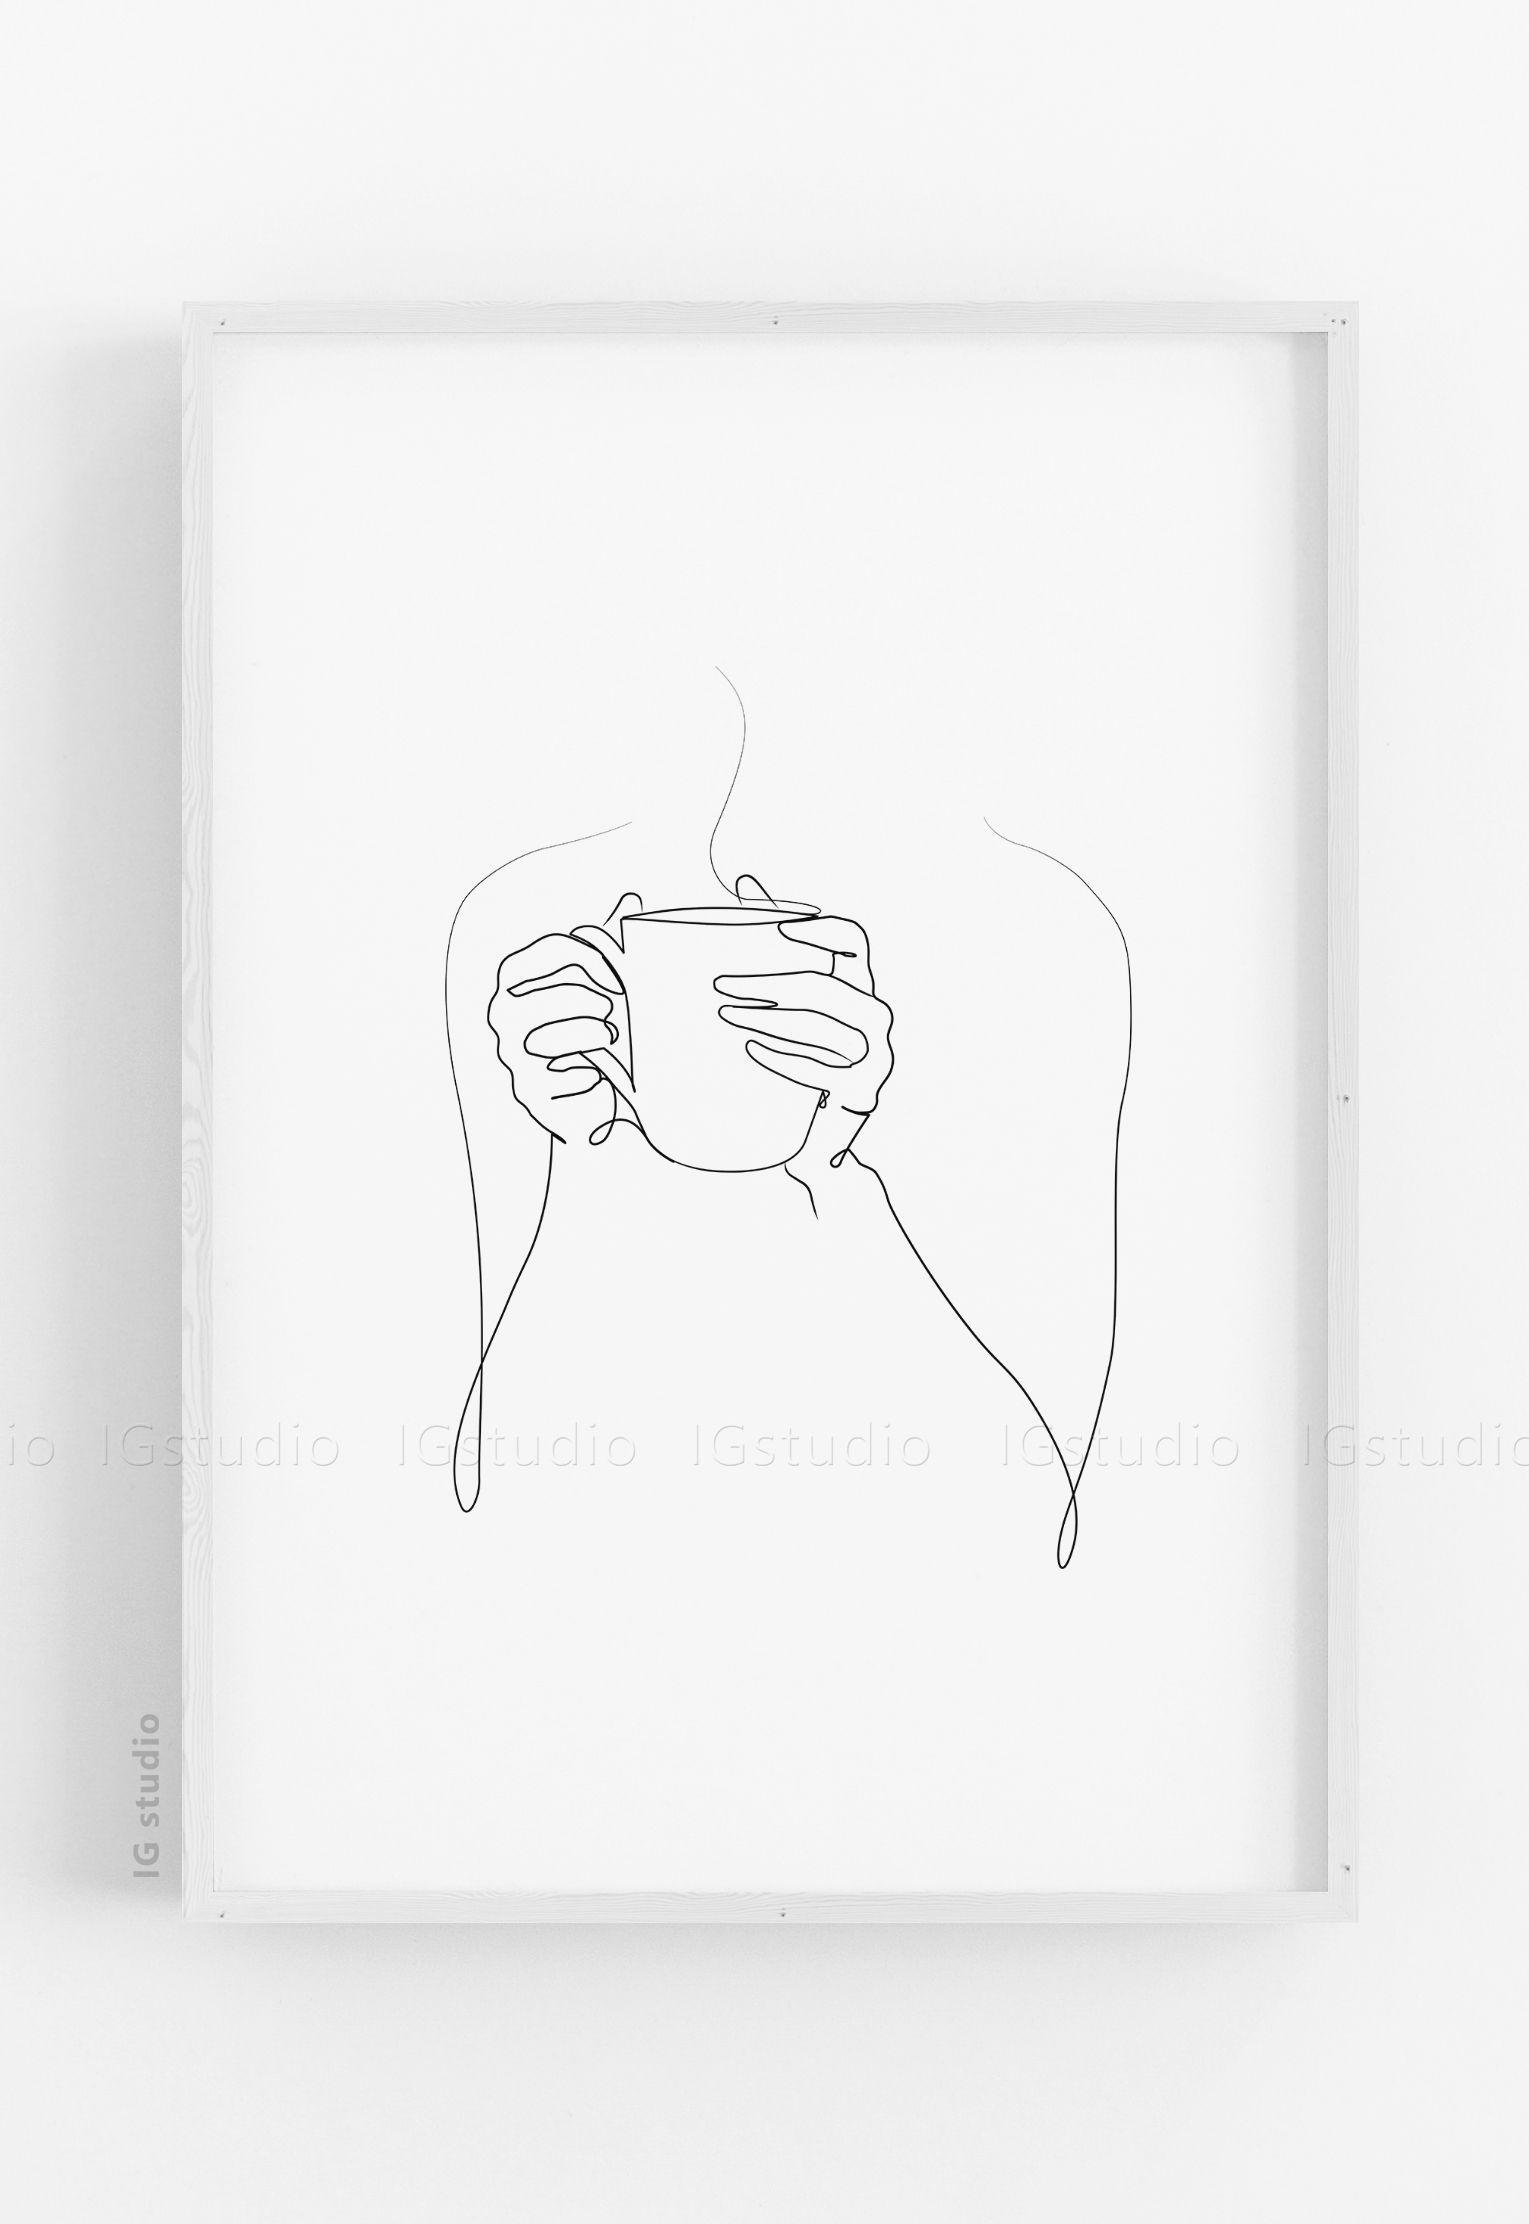 Coffee in Hands, One Line Art Print, Printable Coffee, Single Line Drawing, Wall Art, Hand poster, Coffee Lovers, Minimal Kitchen Decor   #Art #Coffee... ##drawing ##printable #coffee #hands #print #single